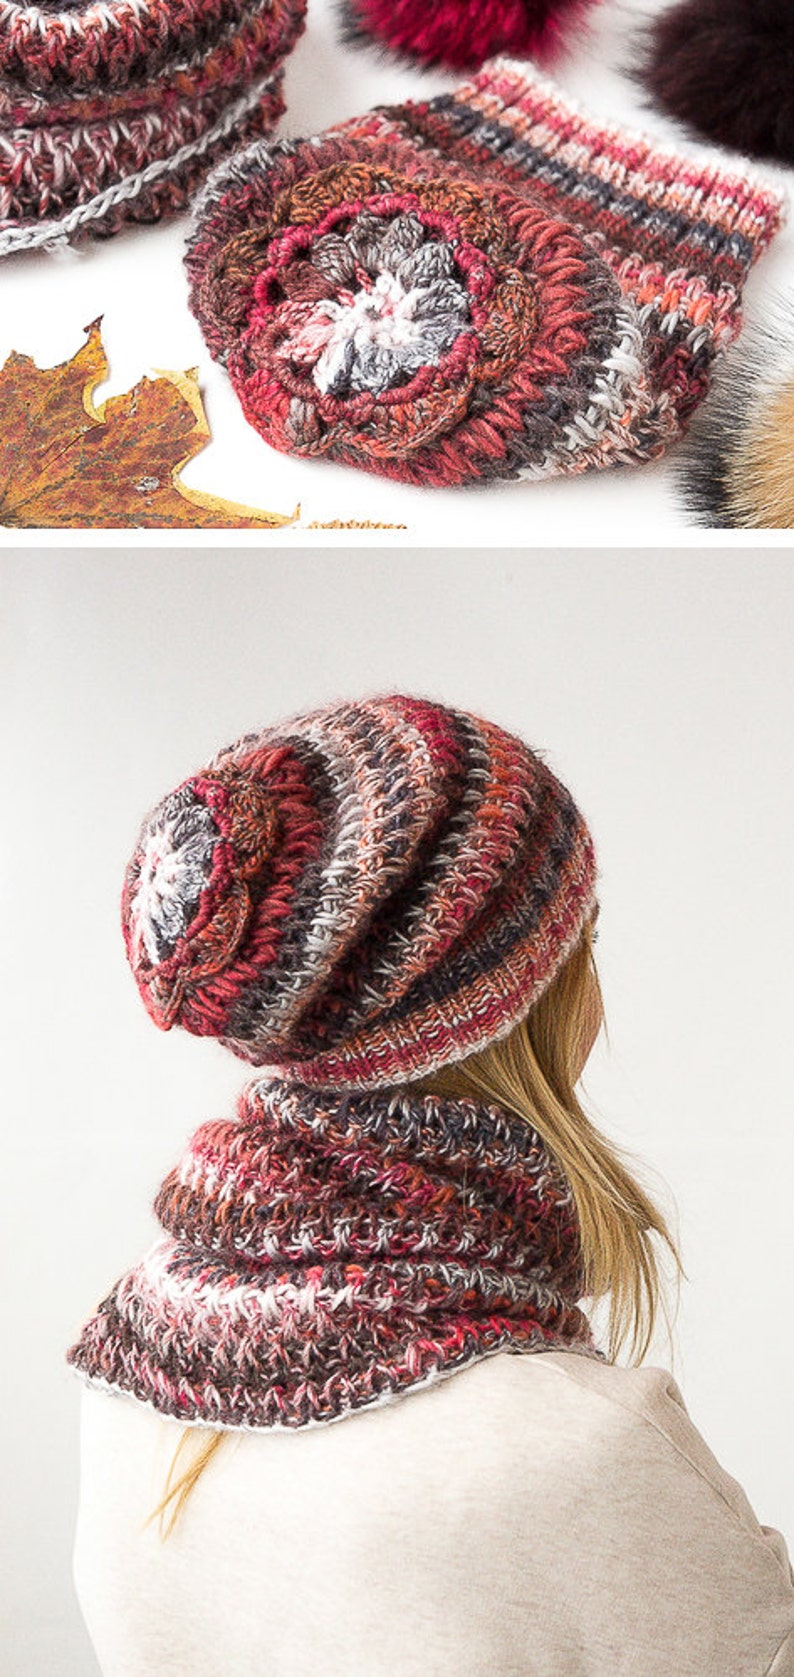 knit slouchy beanie knitted hats for women and knitted scarf circle scarf knit chunky cowl handmade from Italian alpaca and sheep wool